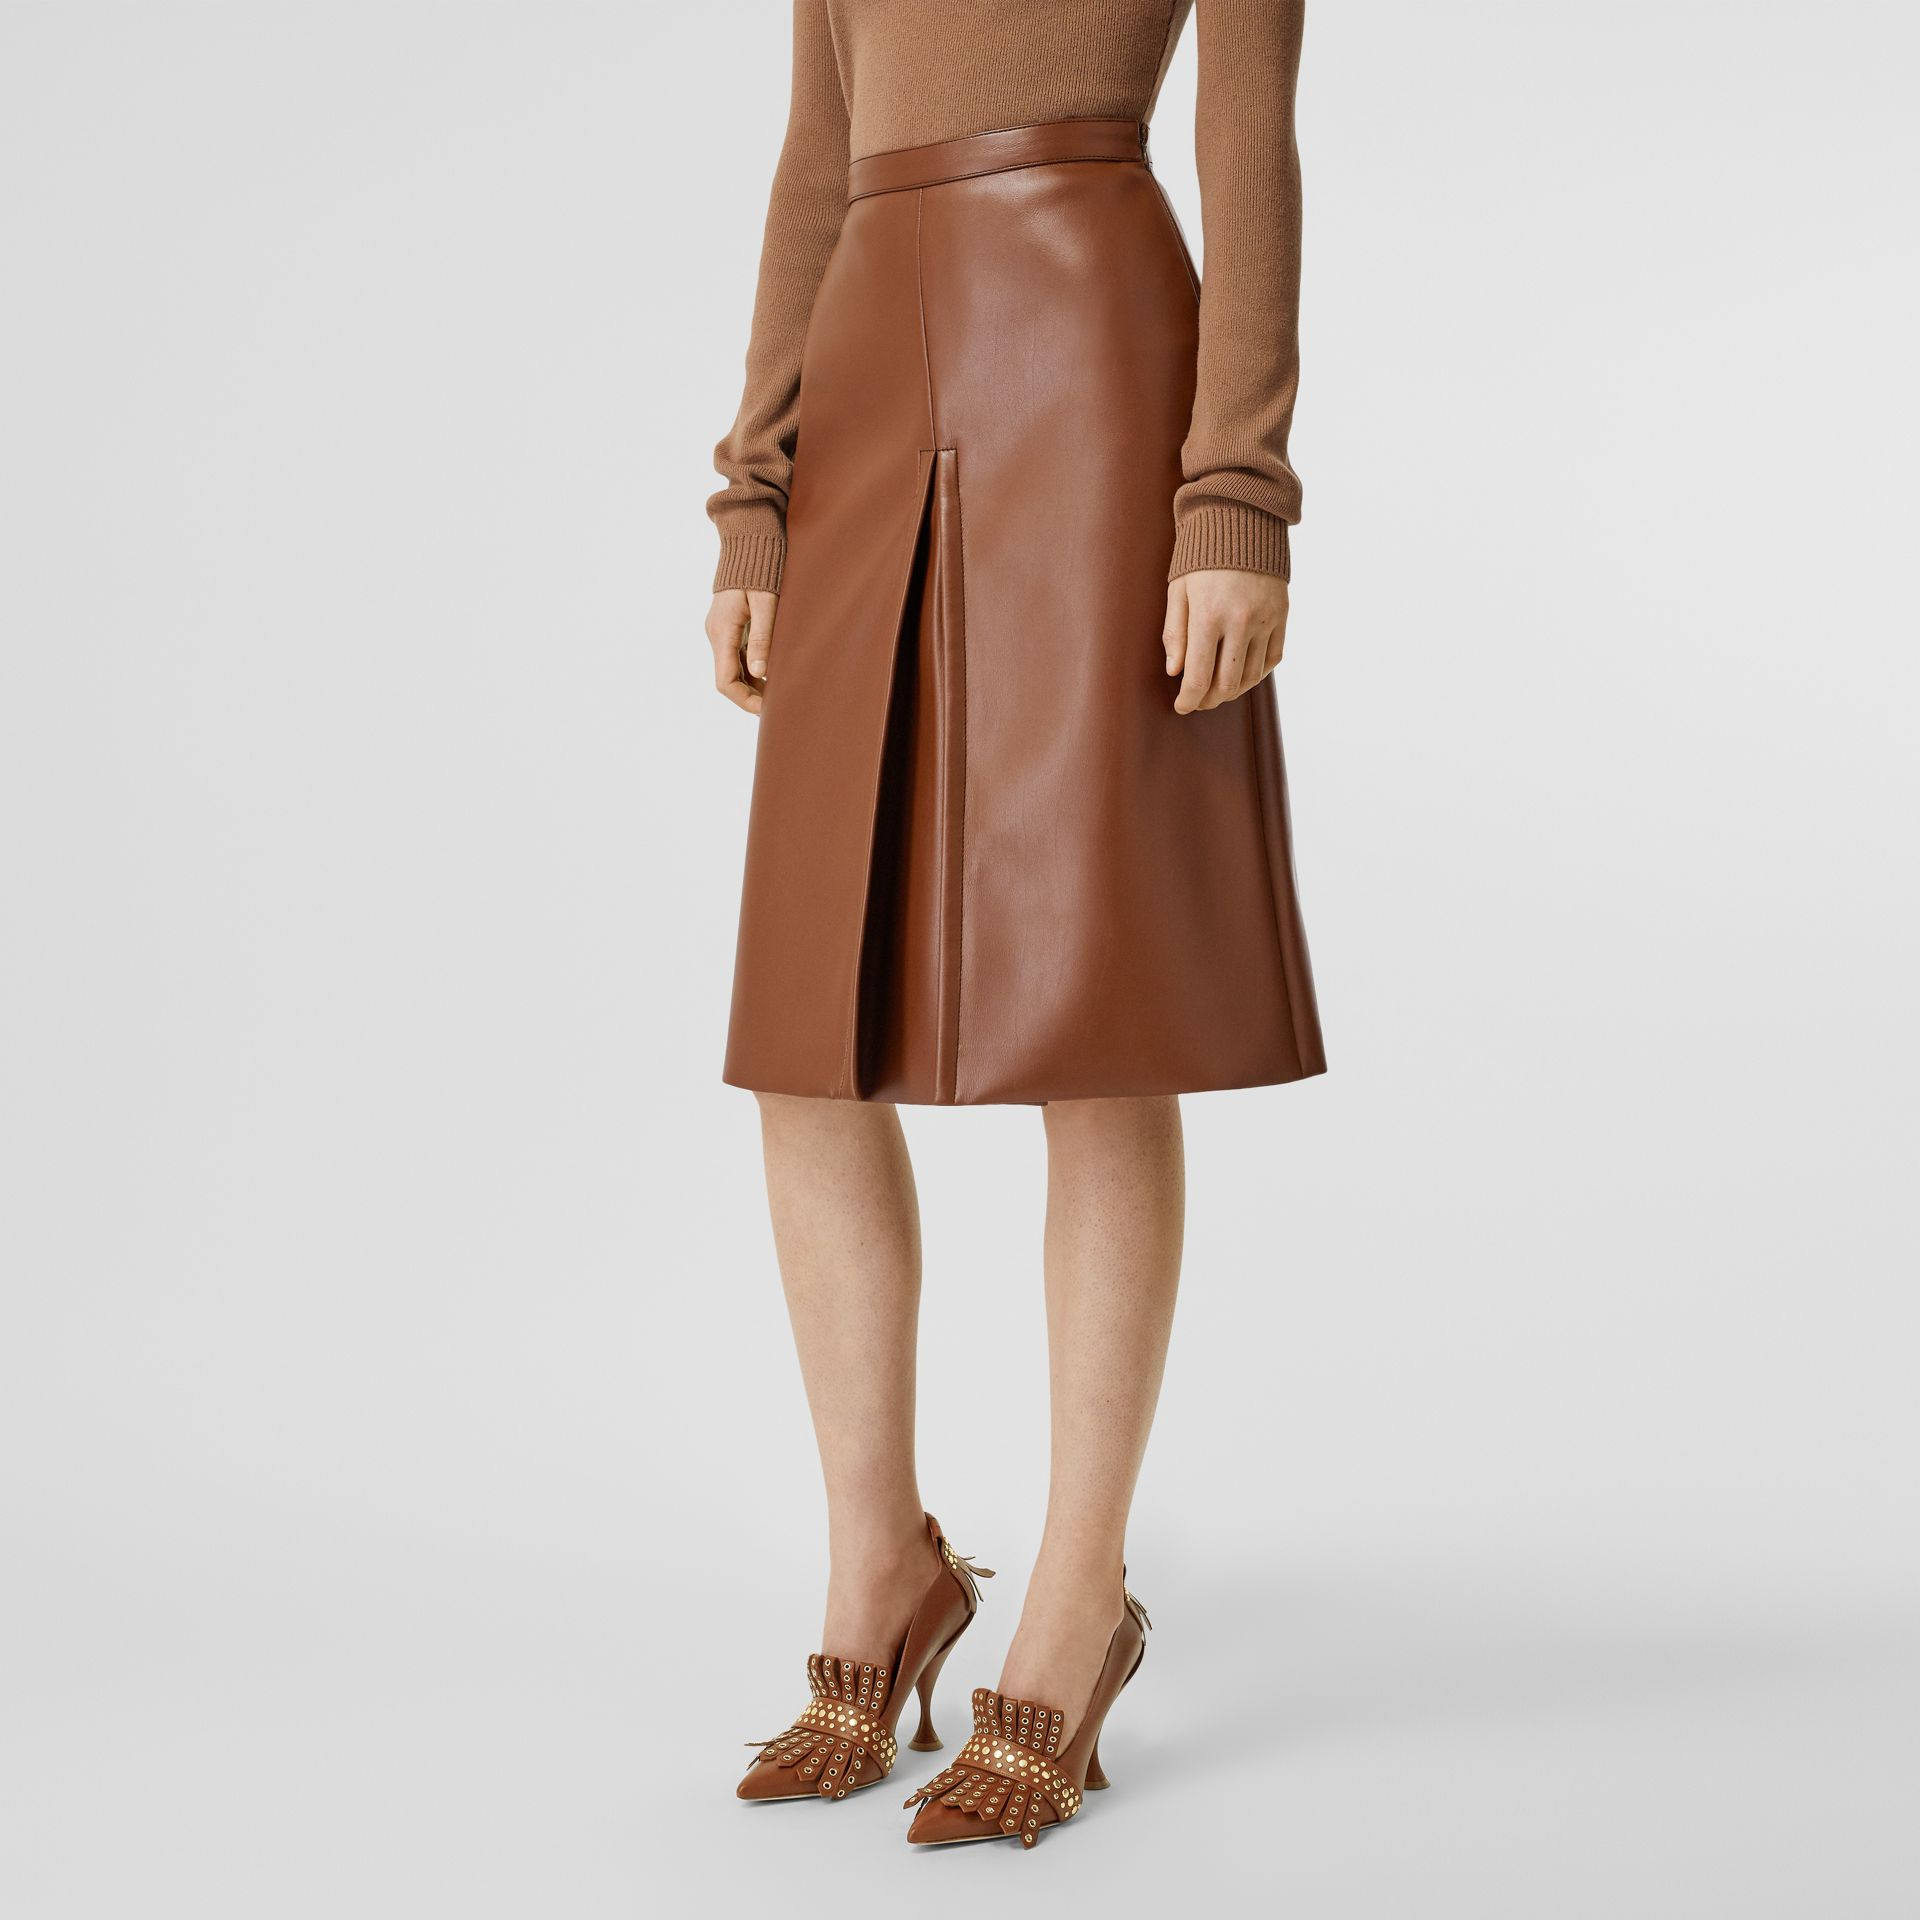 Box Pleat Detail Faux Leather Skirt in Dark Cheshnut Brown - Women | Burberry - gallery image 4